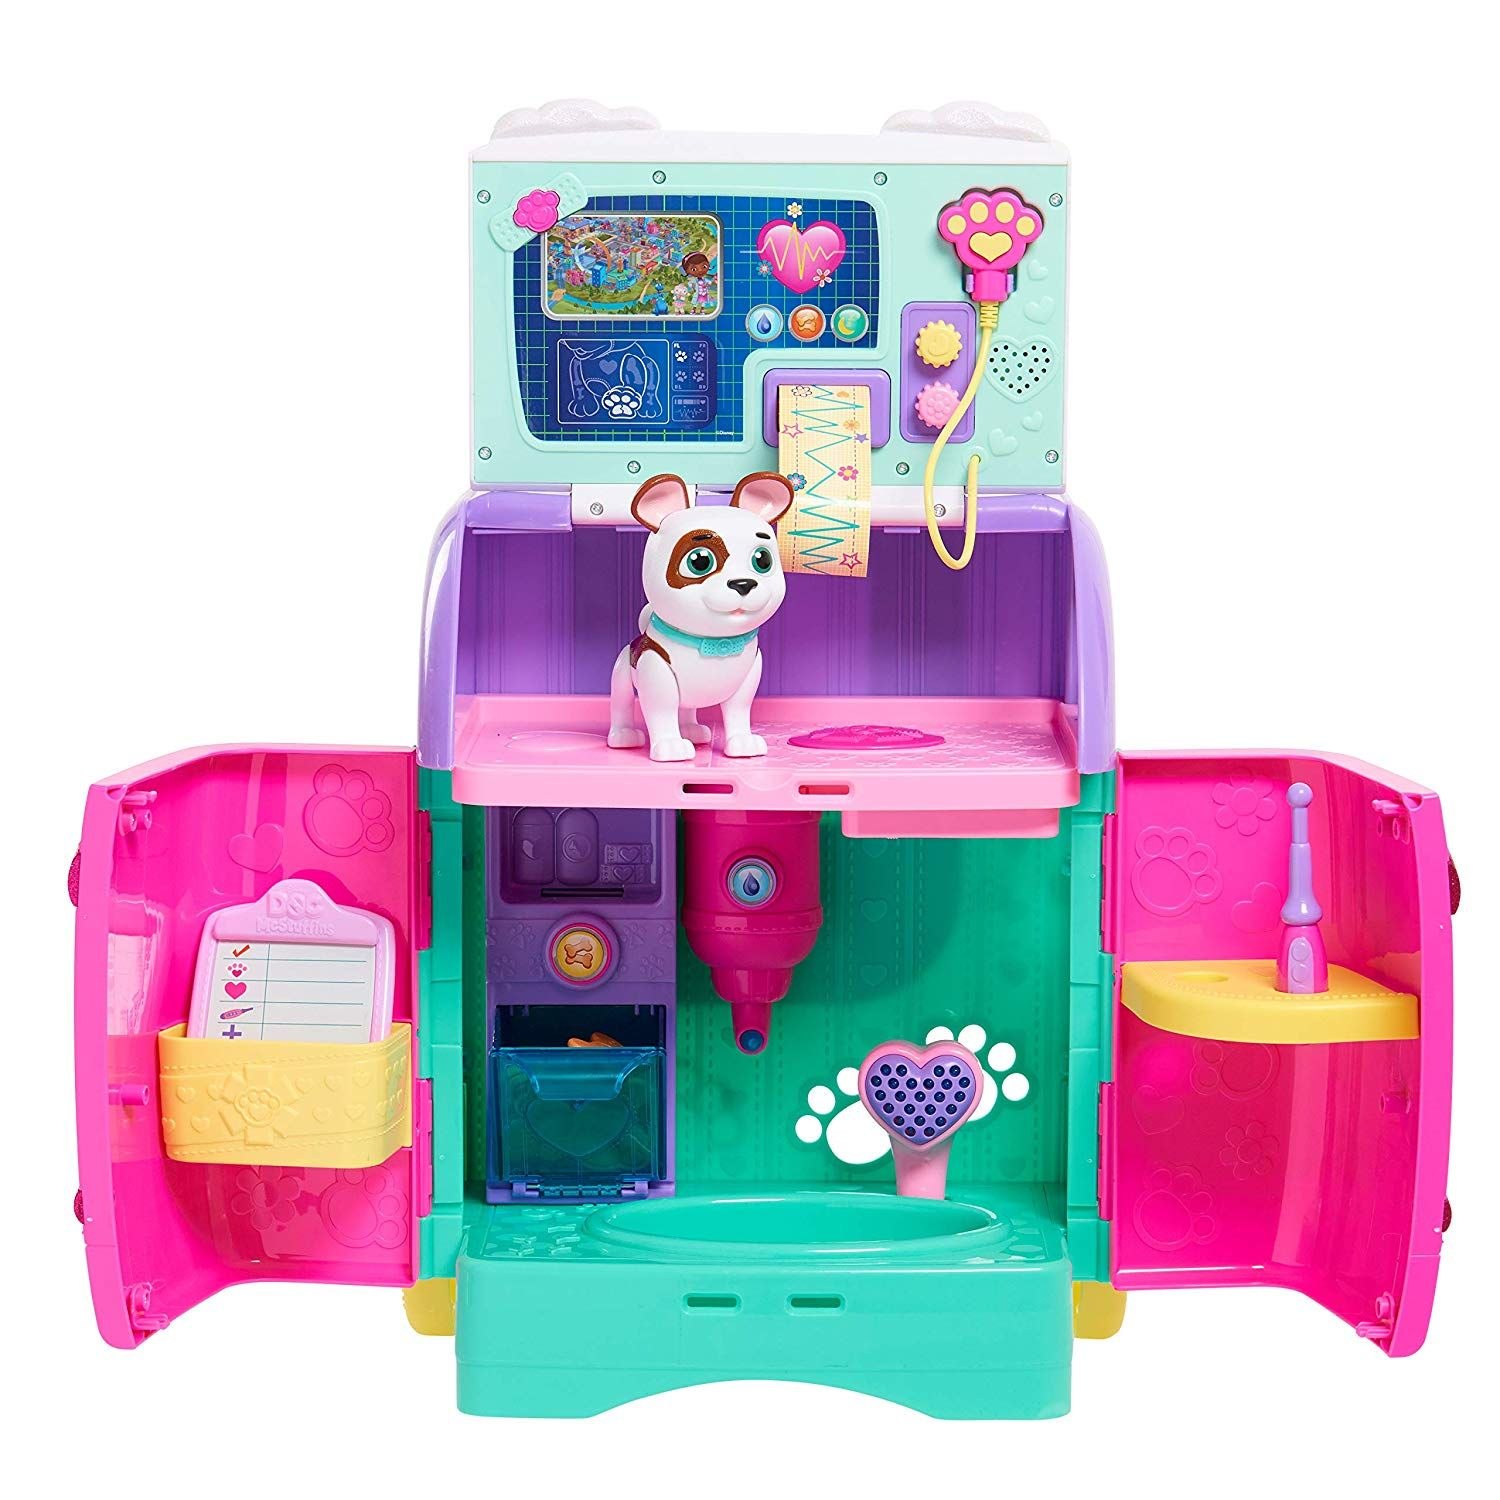 It S Doc Mcstuffins To The Pet Rescue The Newest Theme On The Acclaimed Disney Junior Series Doc Mcstuffins Is Pet Mcstuffins Doc Mcstuffins Baby All In One